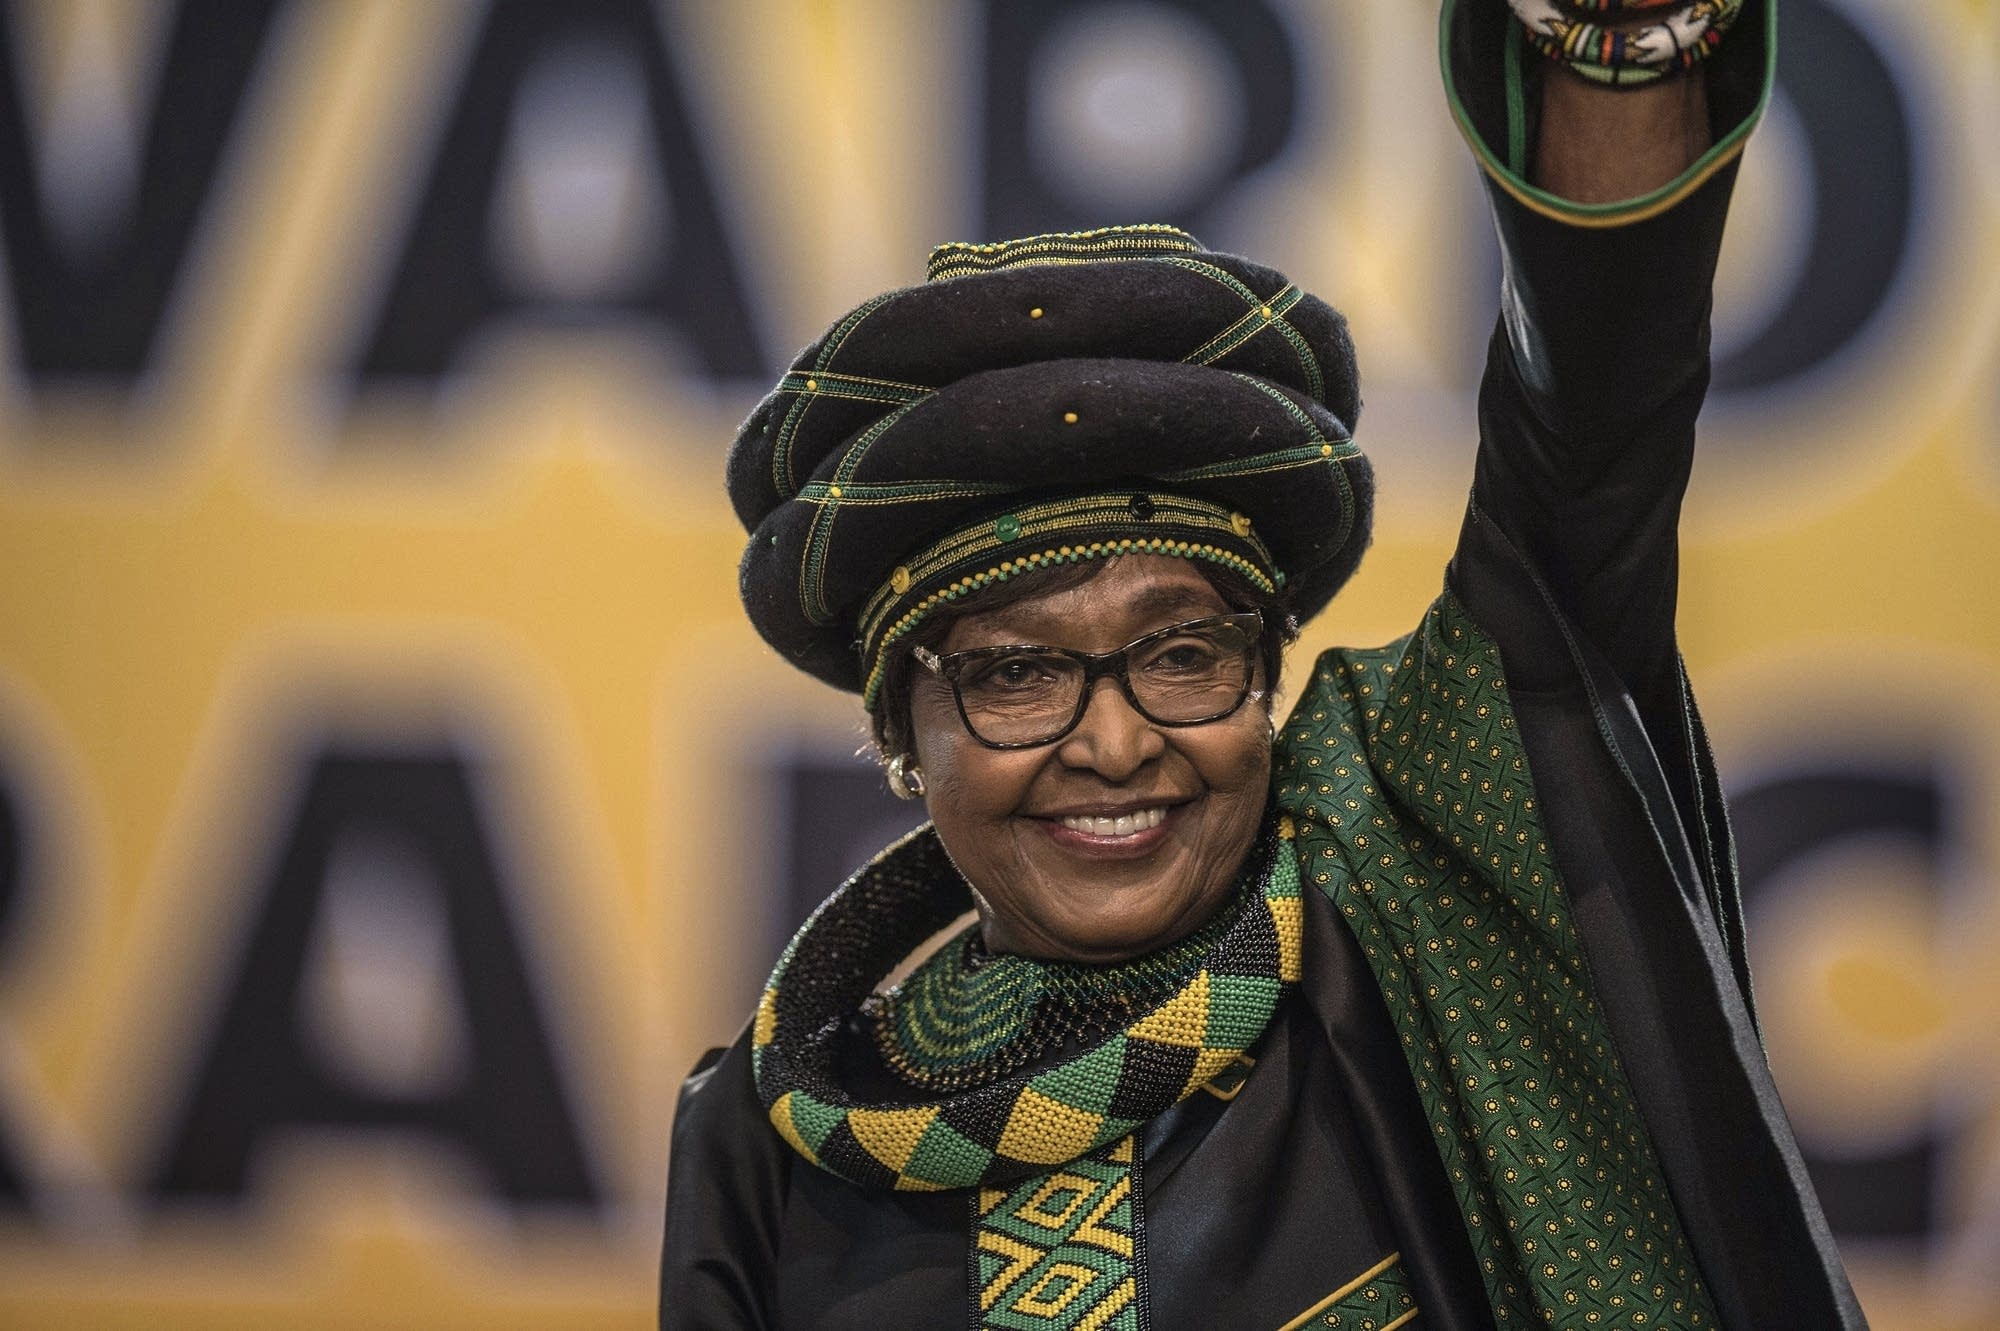 Winnie Mandela waves as she attends the 54th ANC National Conference.